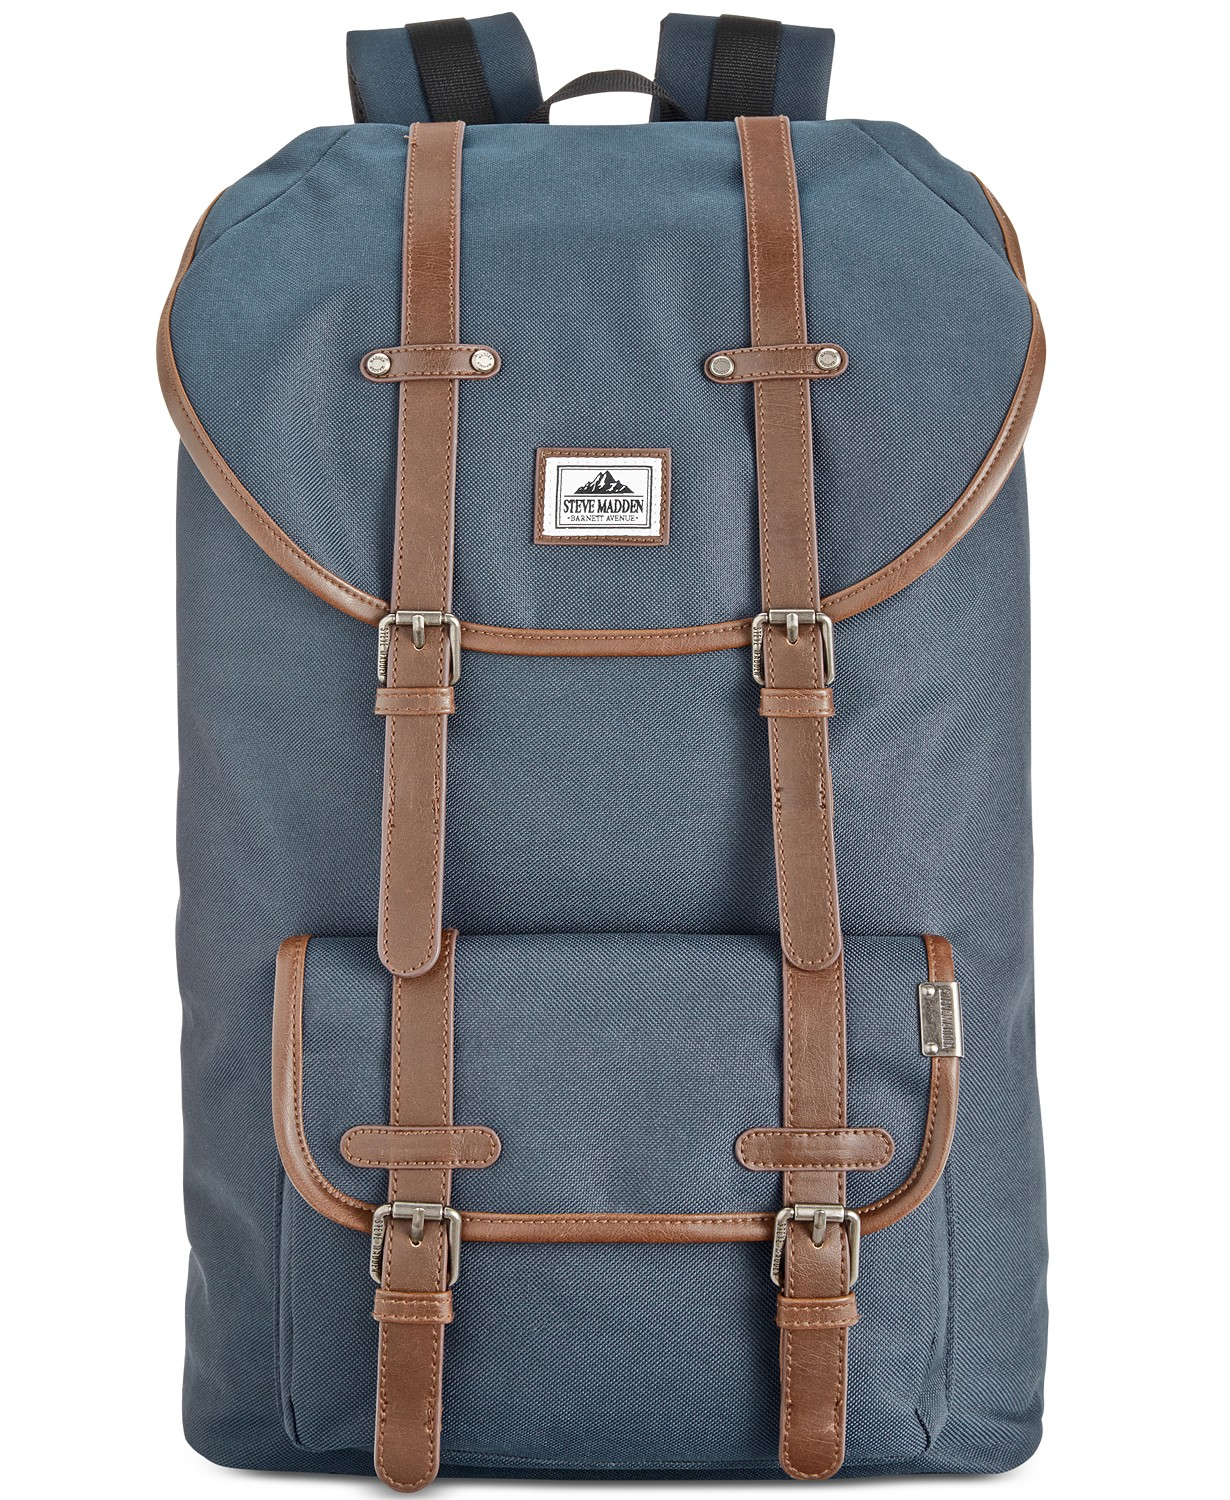 Steve Madden Men's Solid Utility Backpack (Nvy Blue)